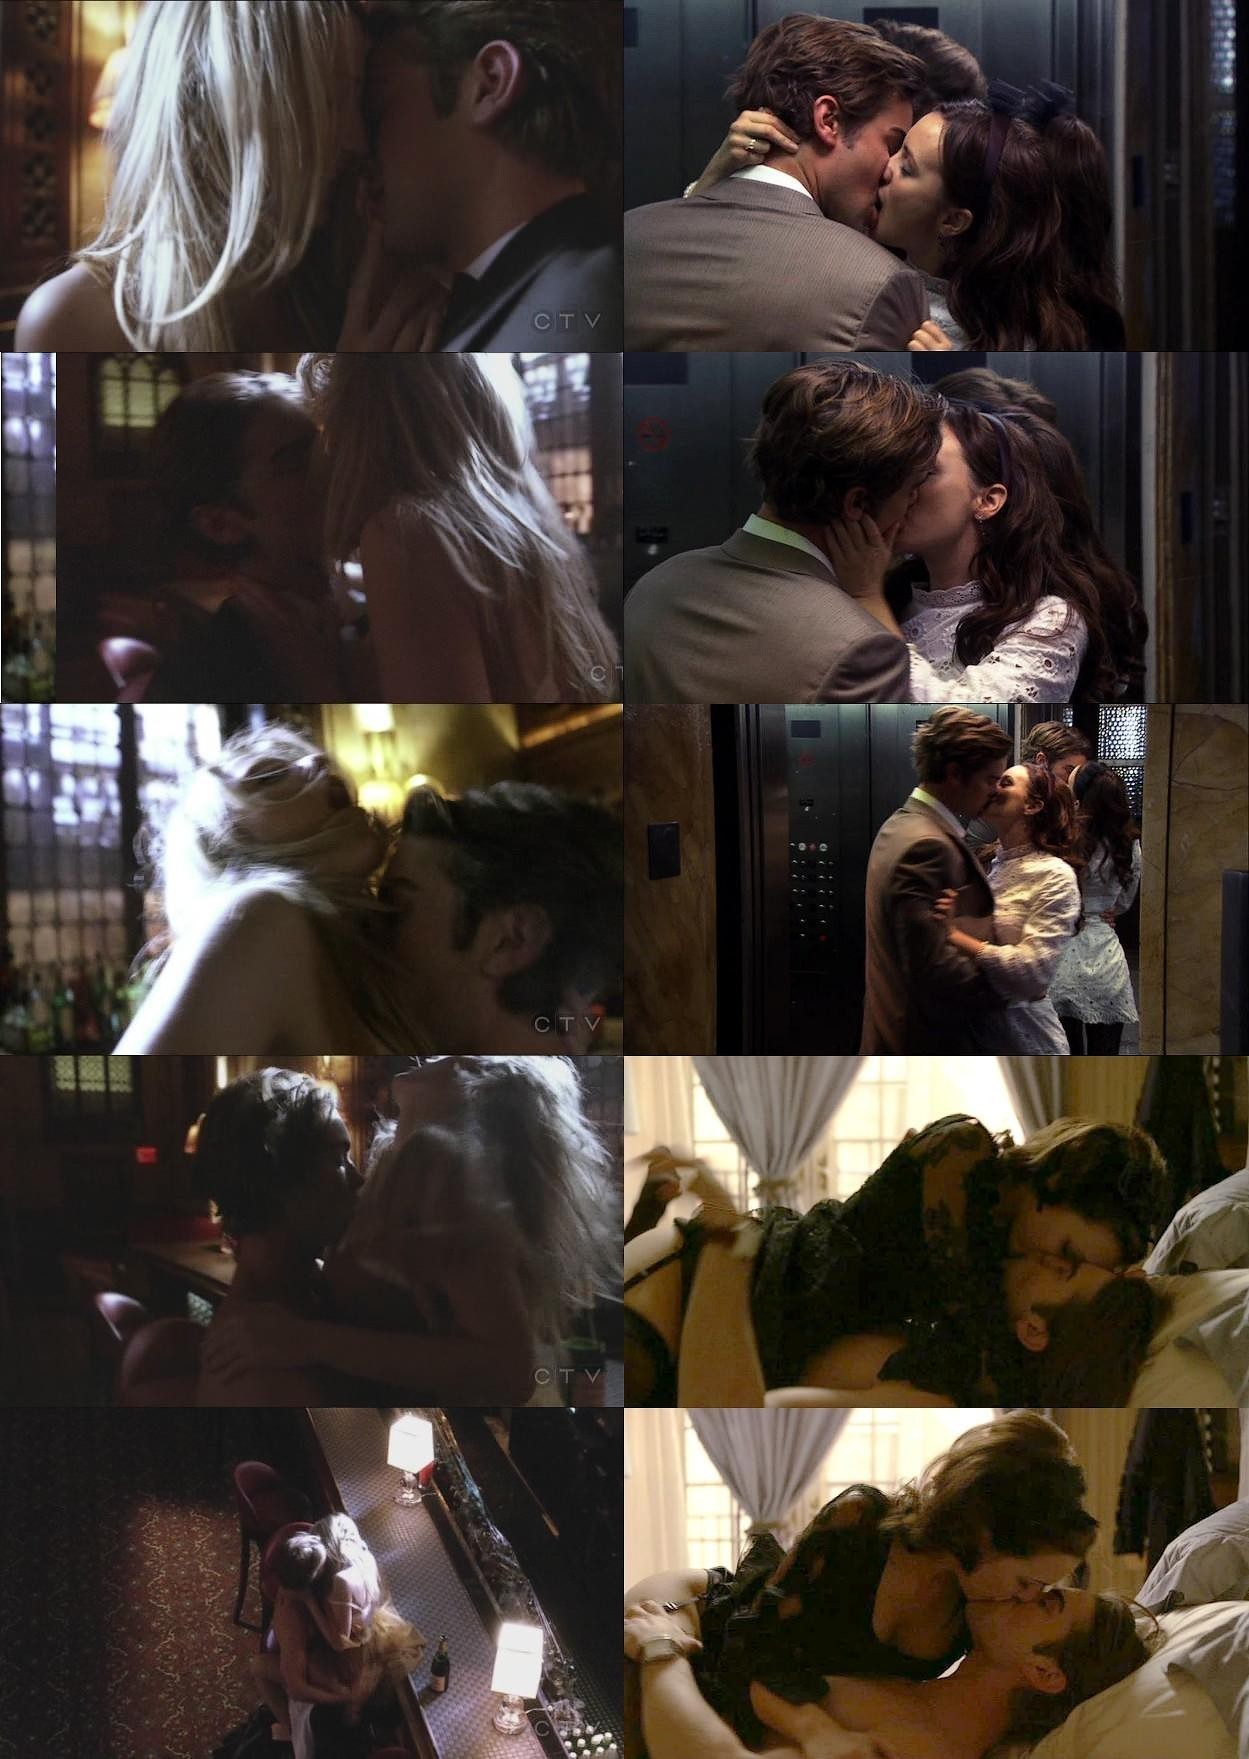 hot scene SNB - Gossip Girl Photo (7832070) - Fanpop